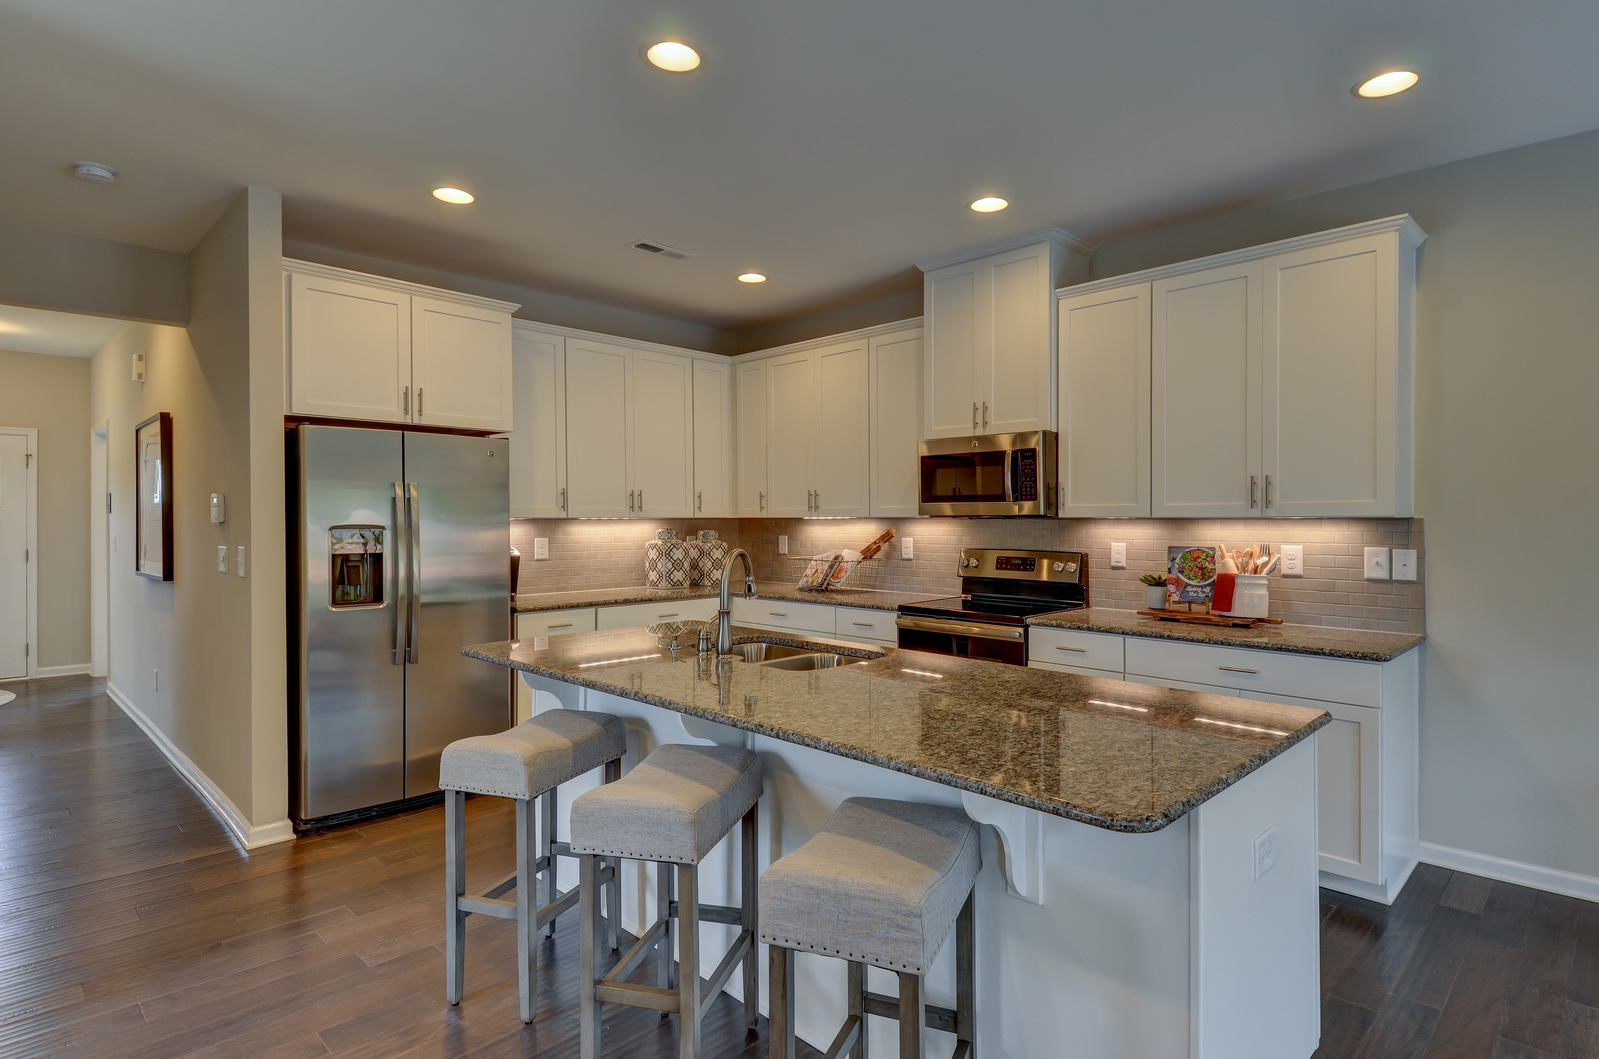 The Best Priced New Townhomes In The Great Valley School  District.u0026nbsp;Schedule Your